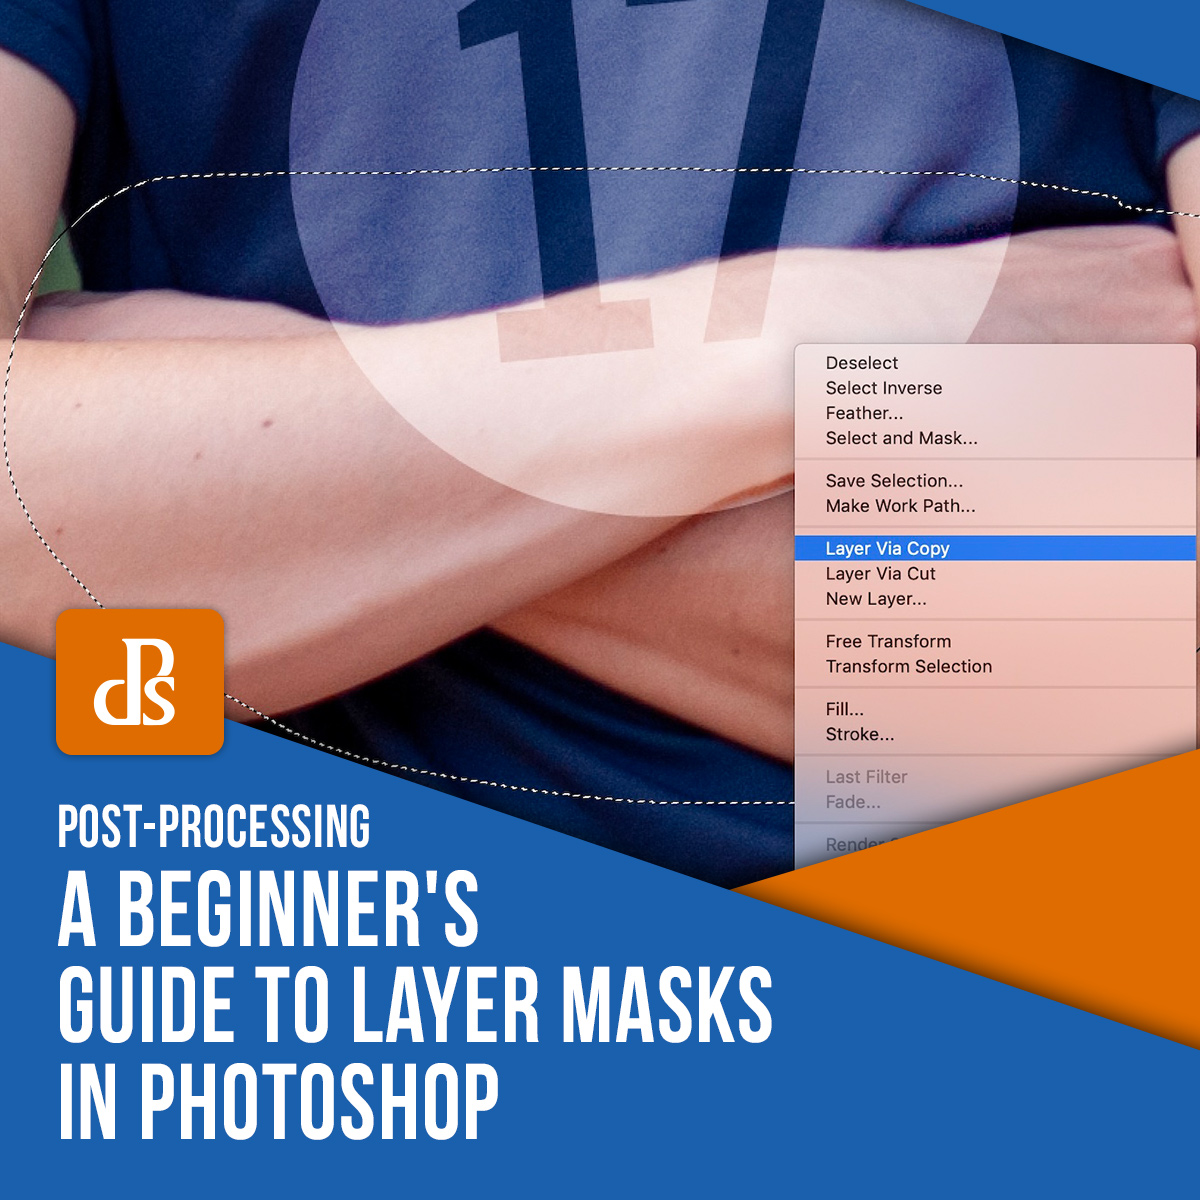 dps-layer-masks-in-photoshop